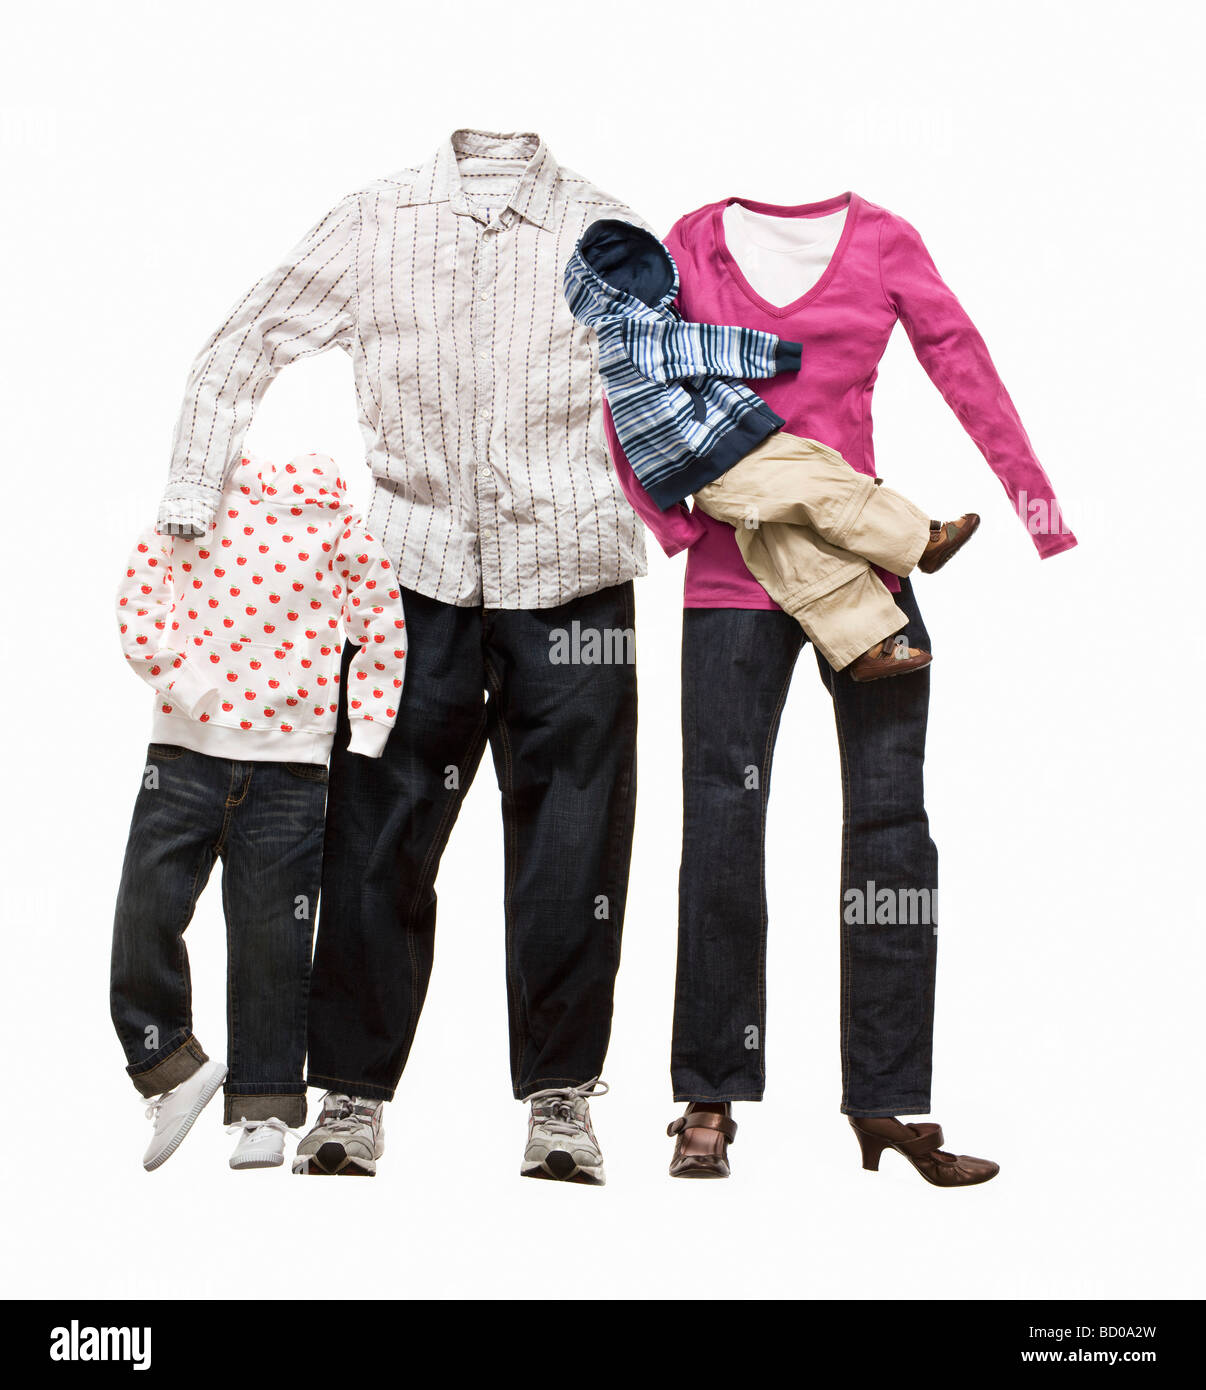 A family made from clothes - Stock Image